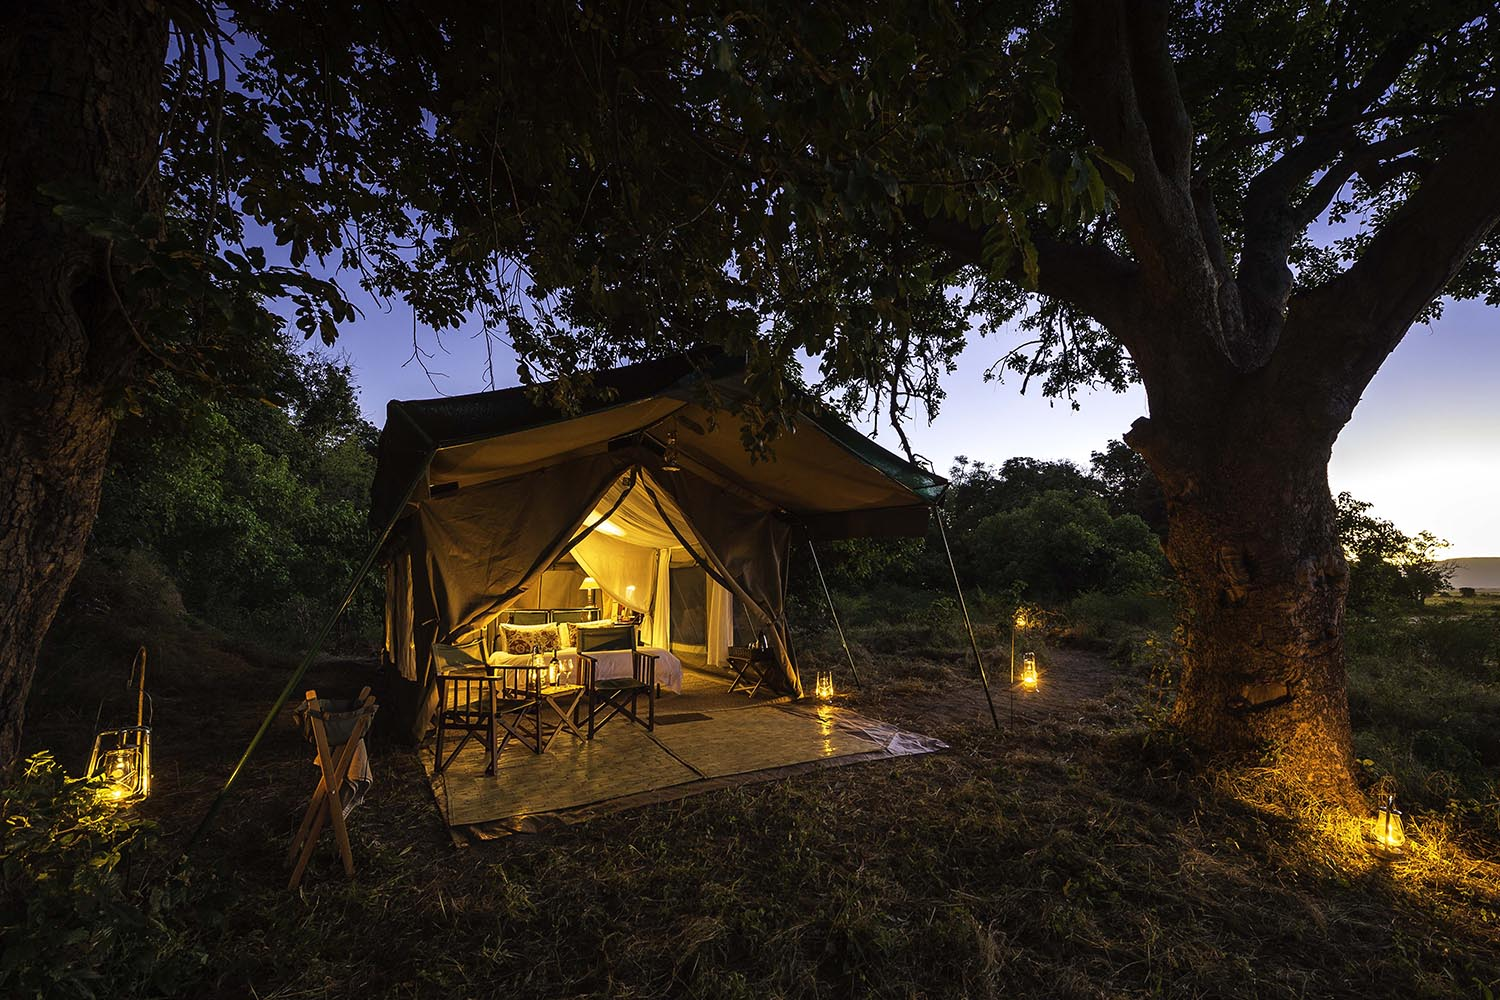 johns camp mana-pools-zimbabwe-accommodation-africa-safari-zambia-in-style-meru-styled-tents-evening-view